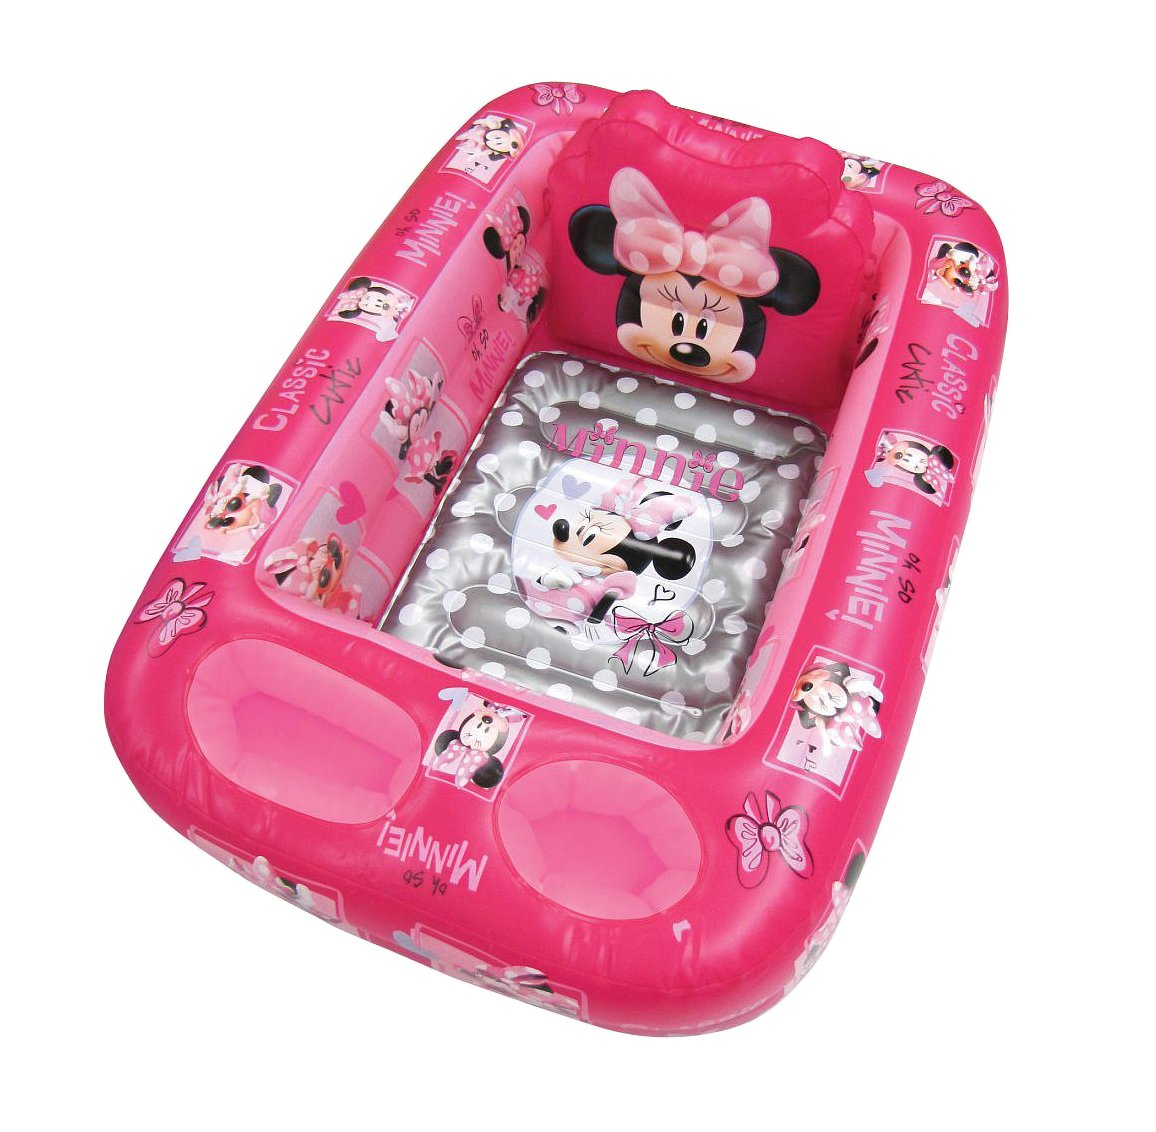 Amazon.com : Disney Minnie Mouse Inflatable Safety Bathtub, Pink : Baby